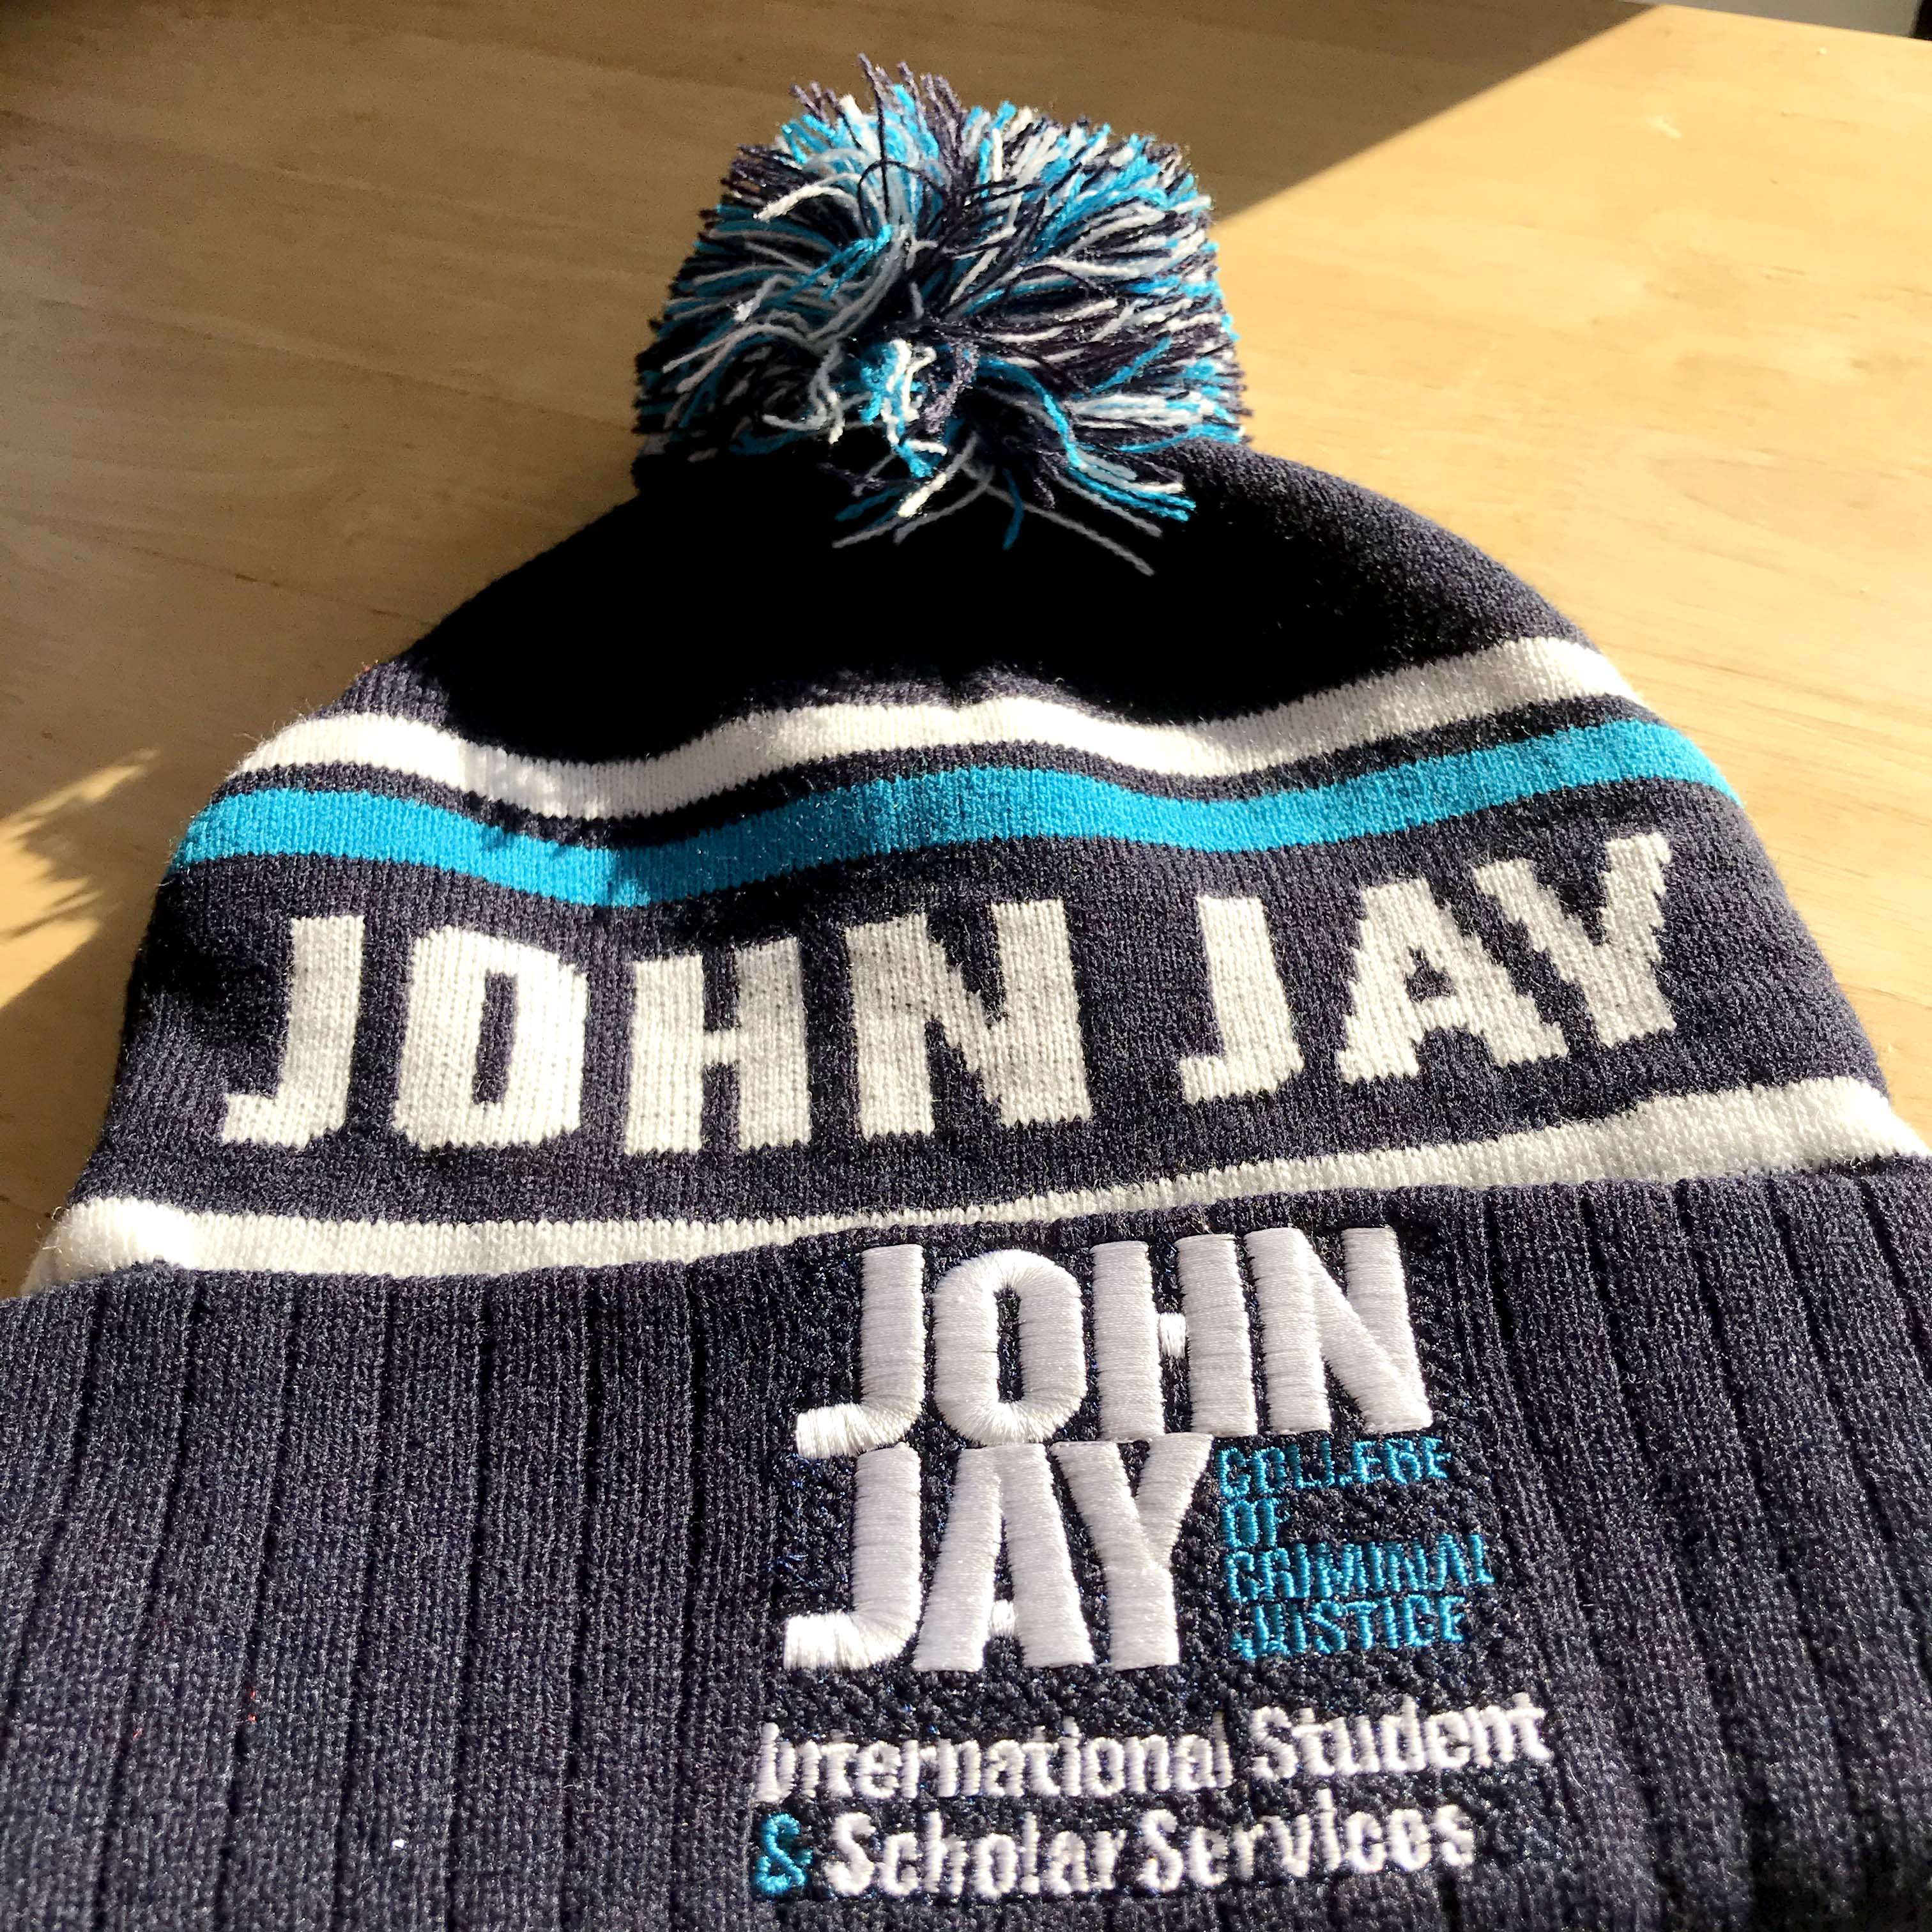 A John Jay black, blue and gray beanie.